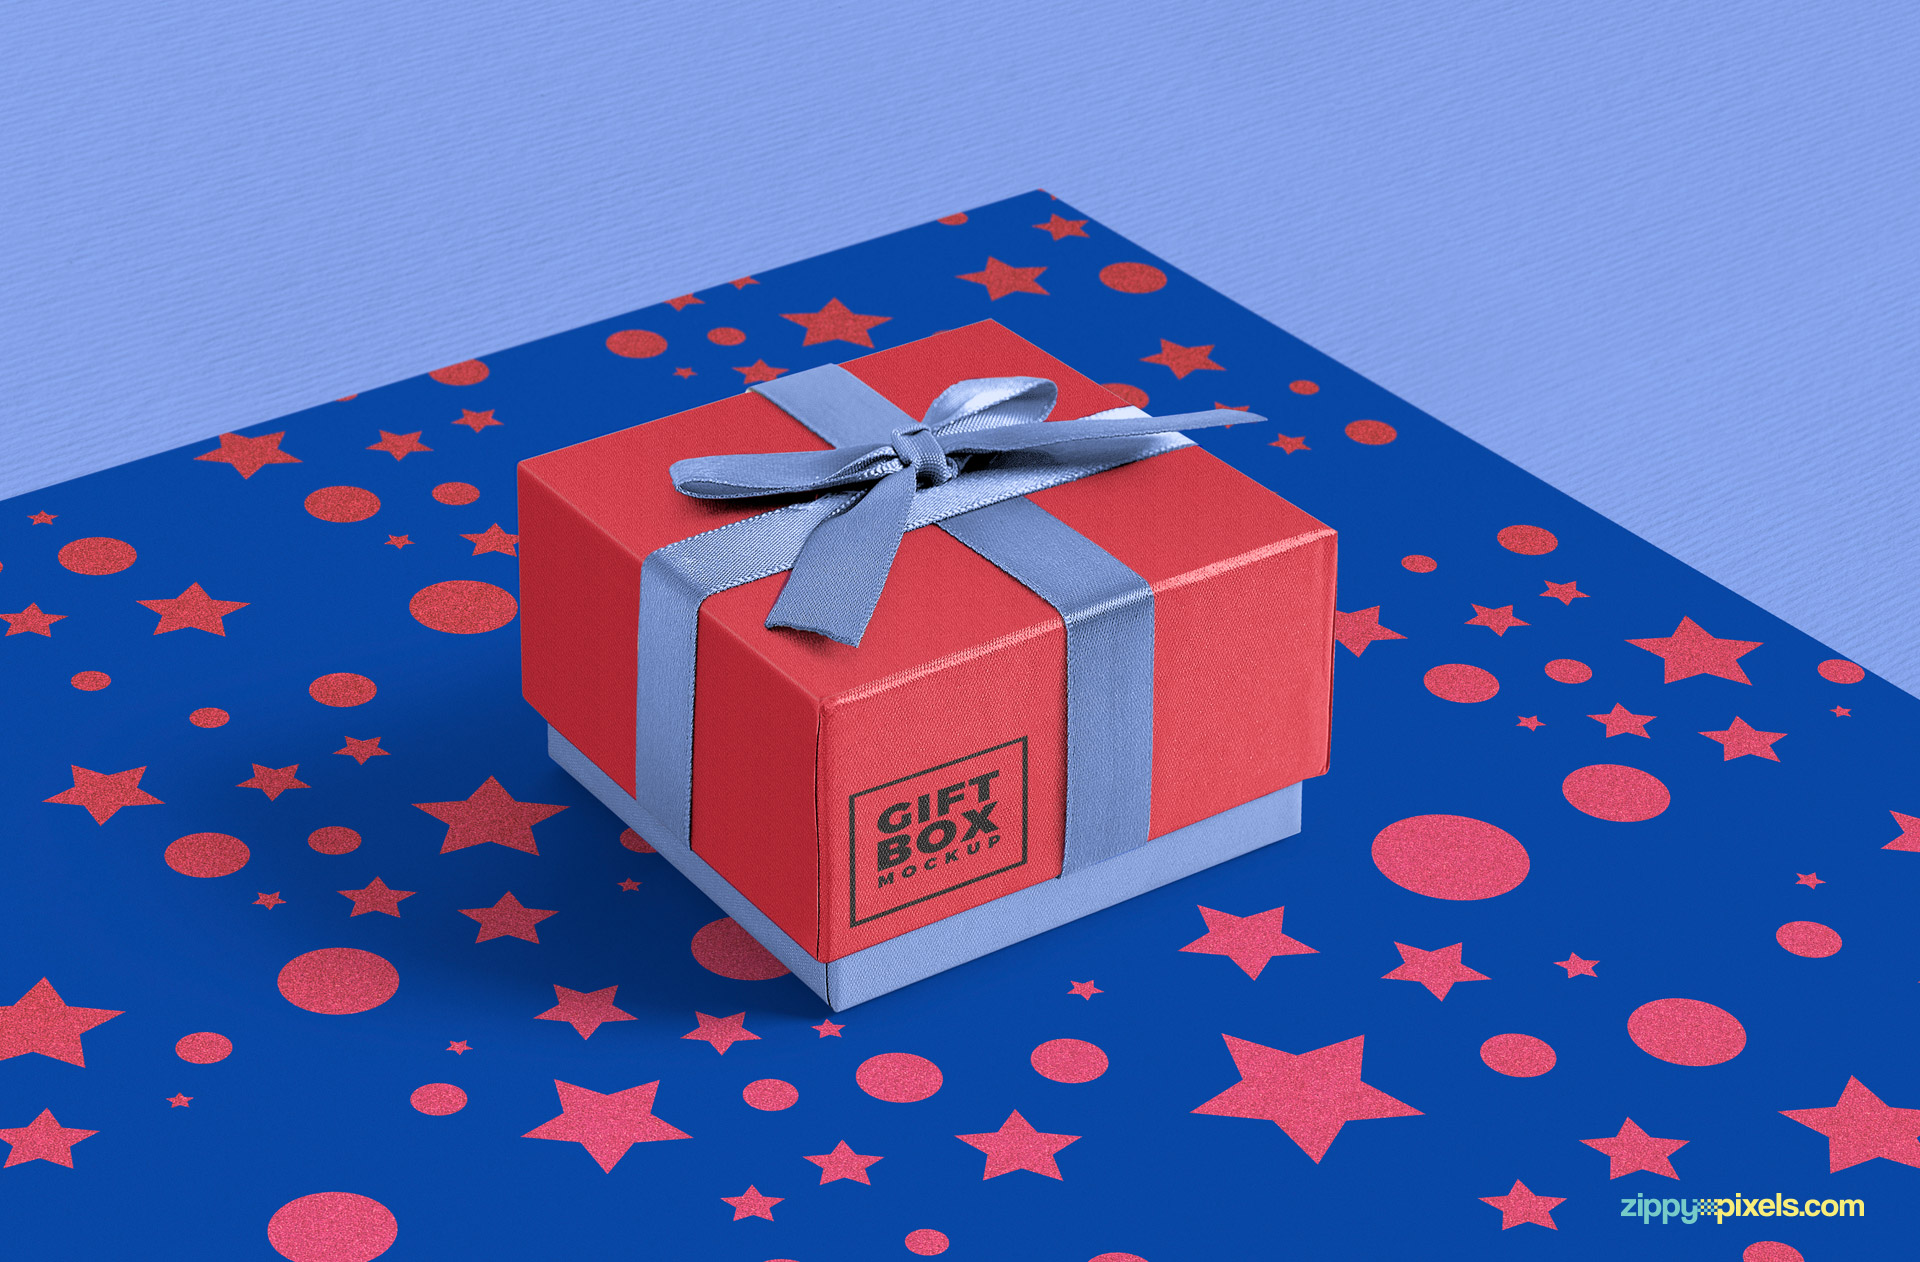 fully customizable free gift box mockup with customizable wrapping paper